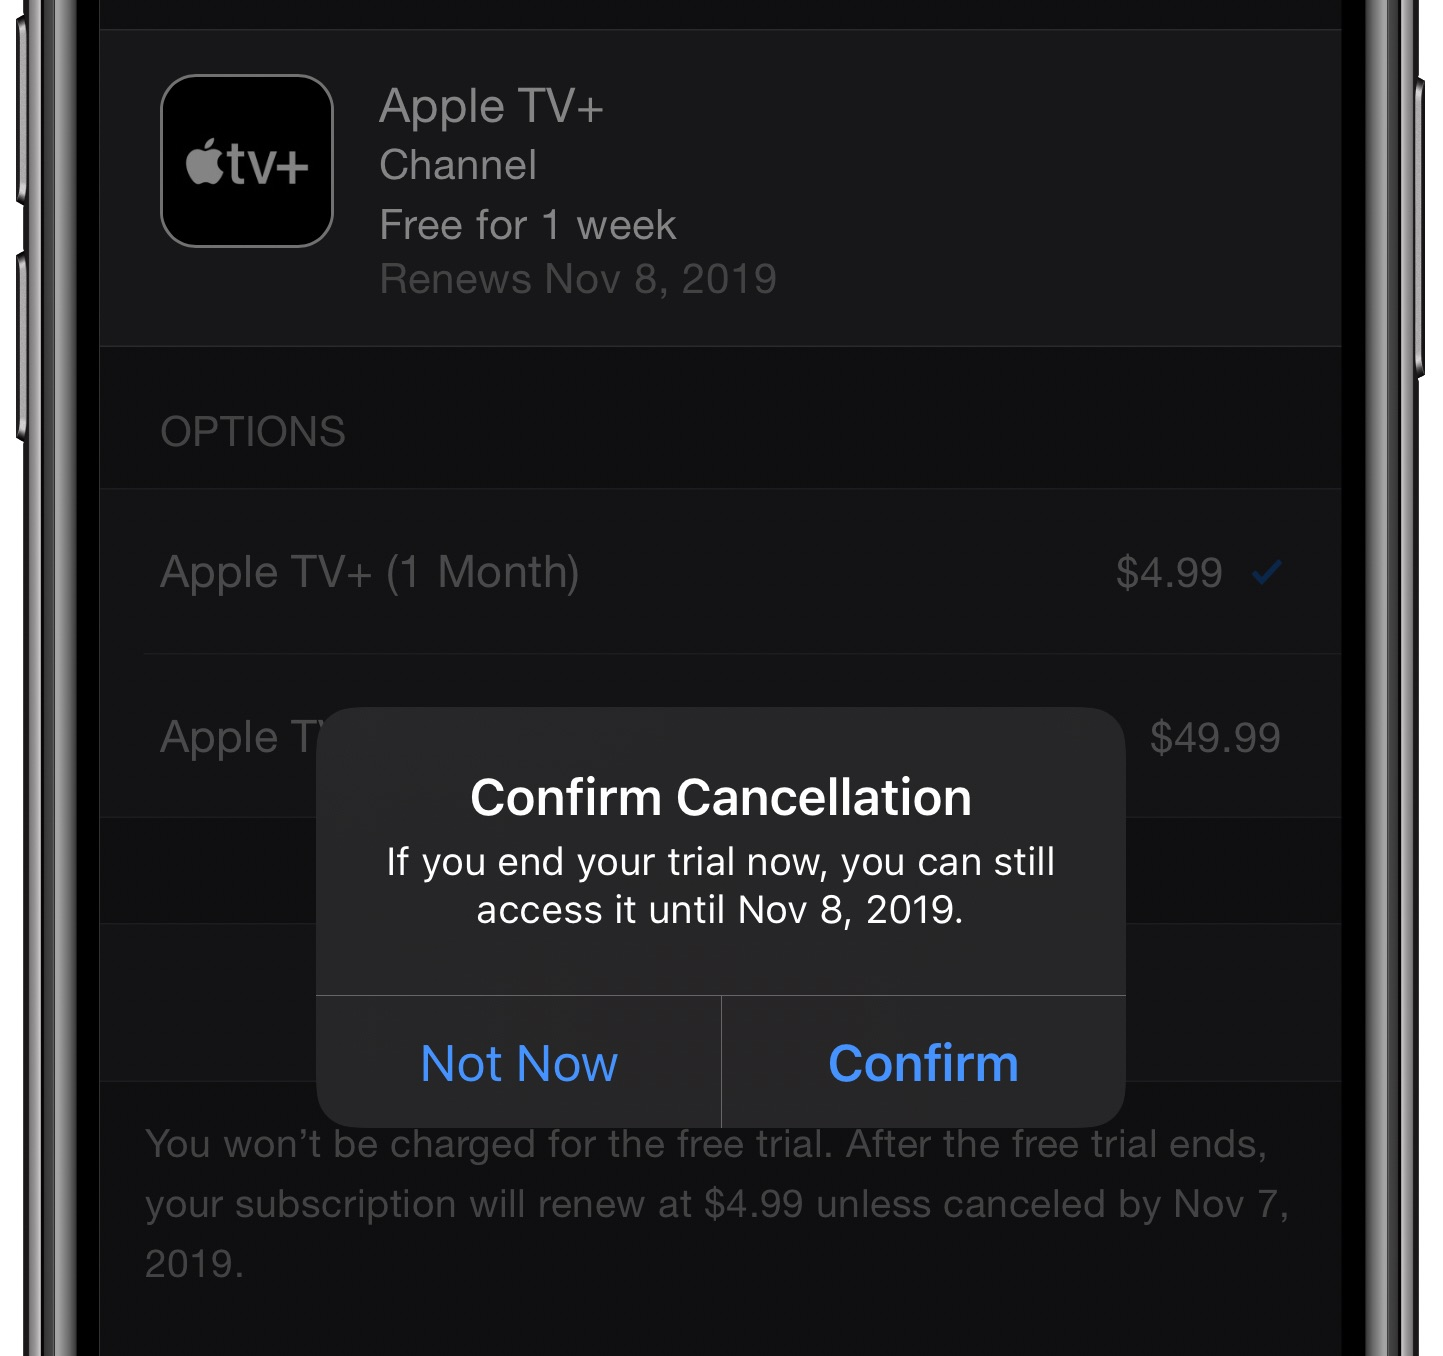 Your 7-day free Apple TV+ trial should be cancelled immediately.